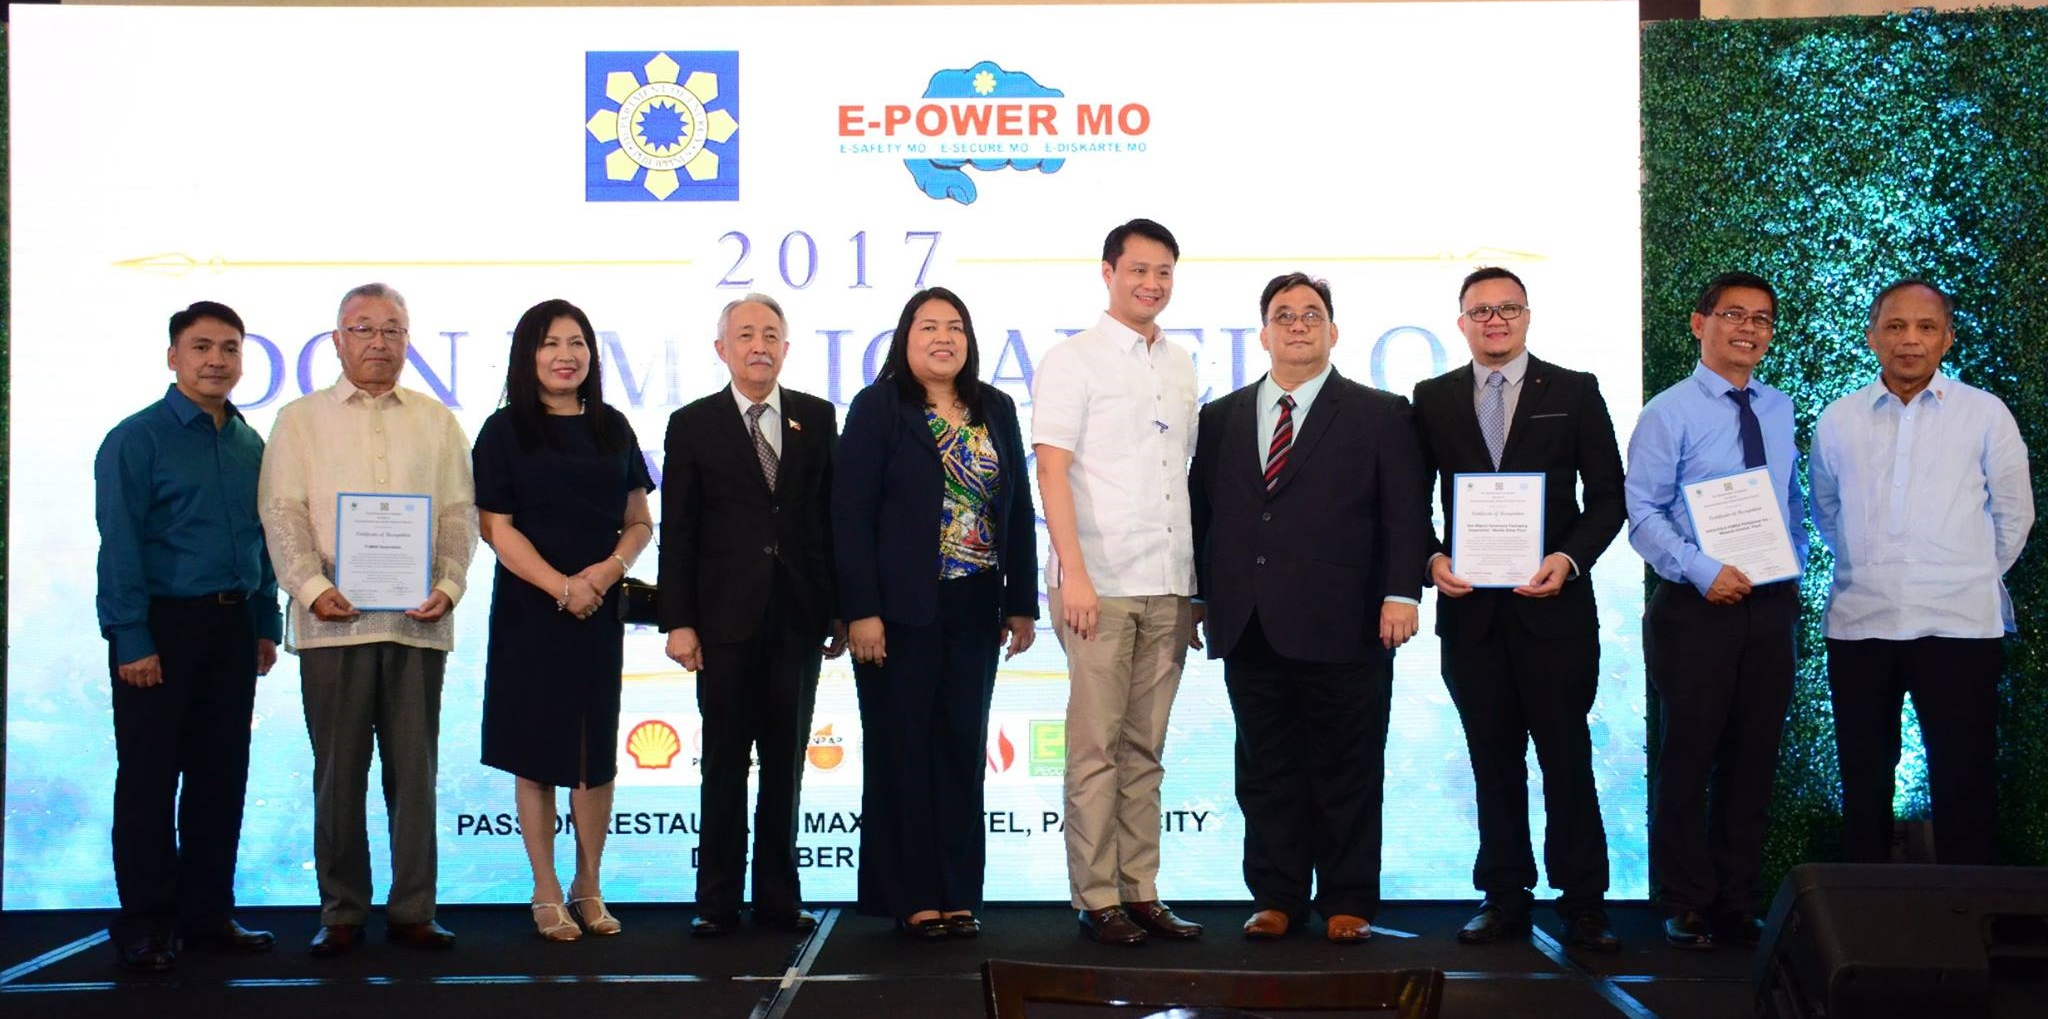 during the Don Emilio Abello Energy Efficiency Awarding 2017